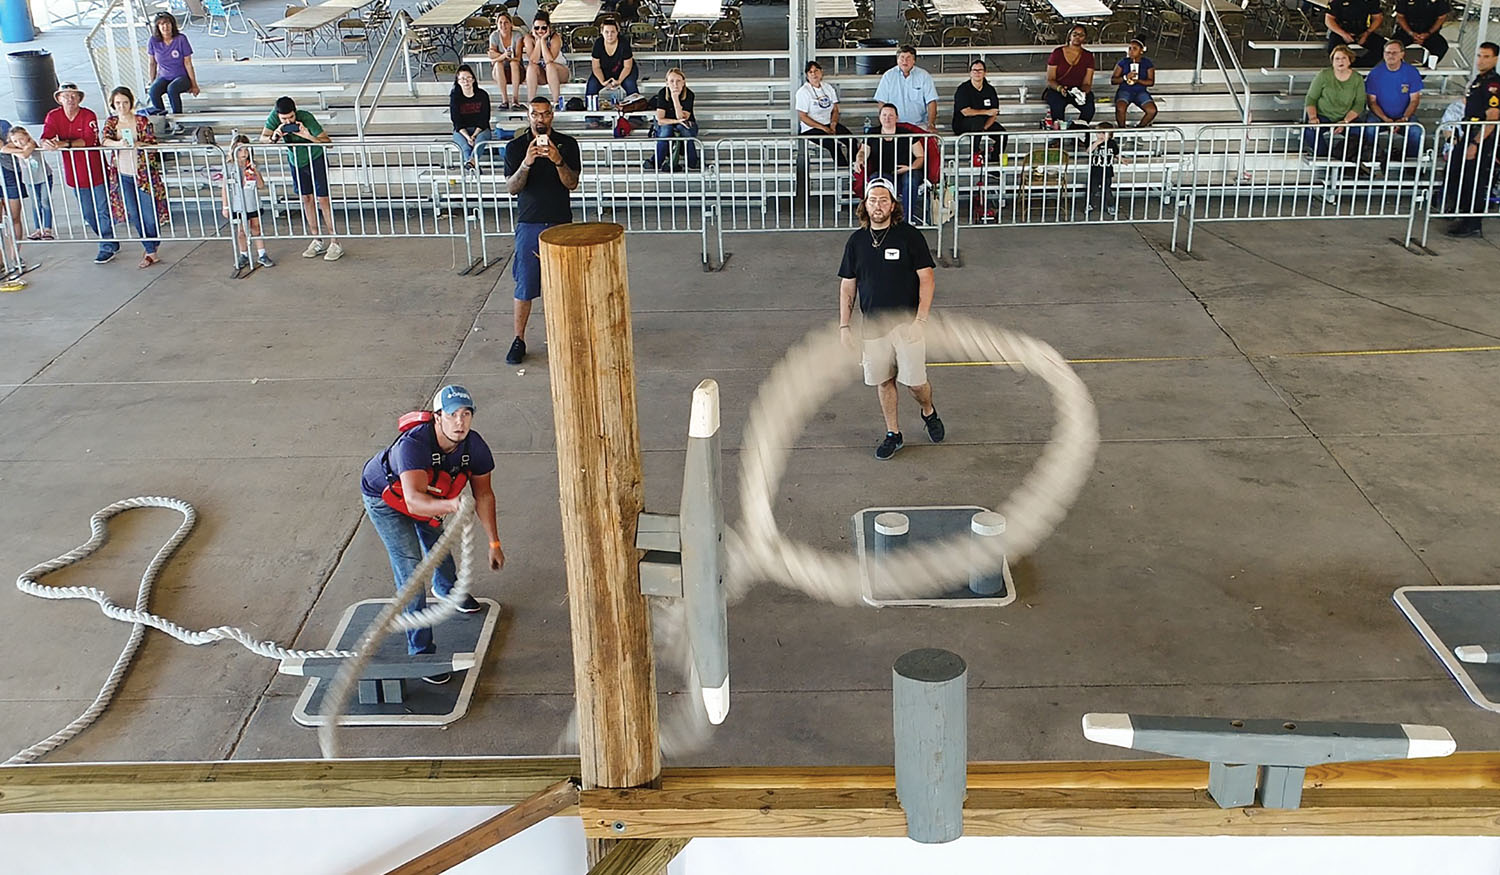 Maritime Throwdown Puts Line Skills, Safety On Display